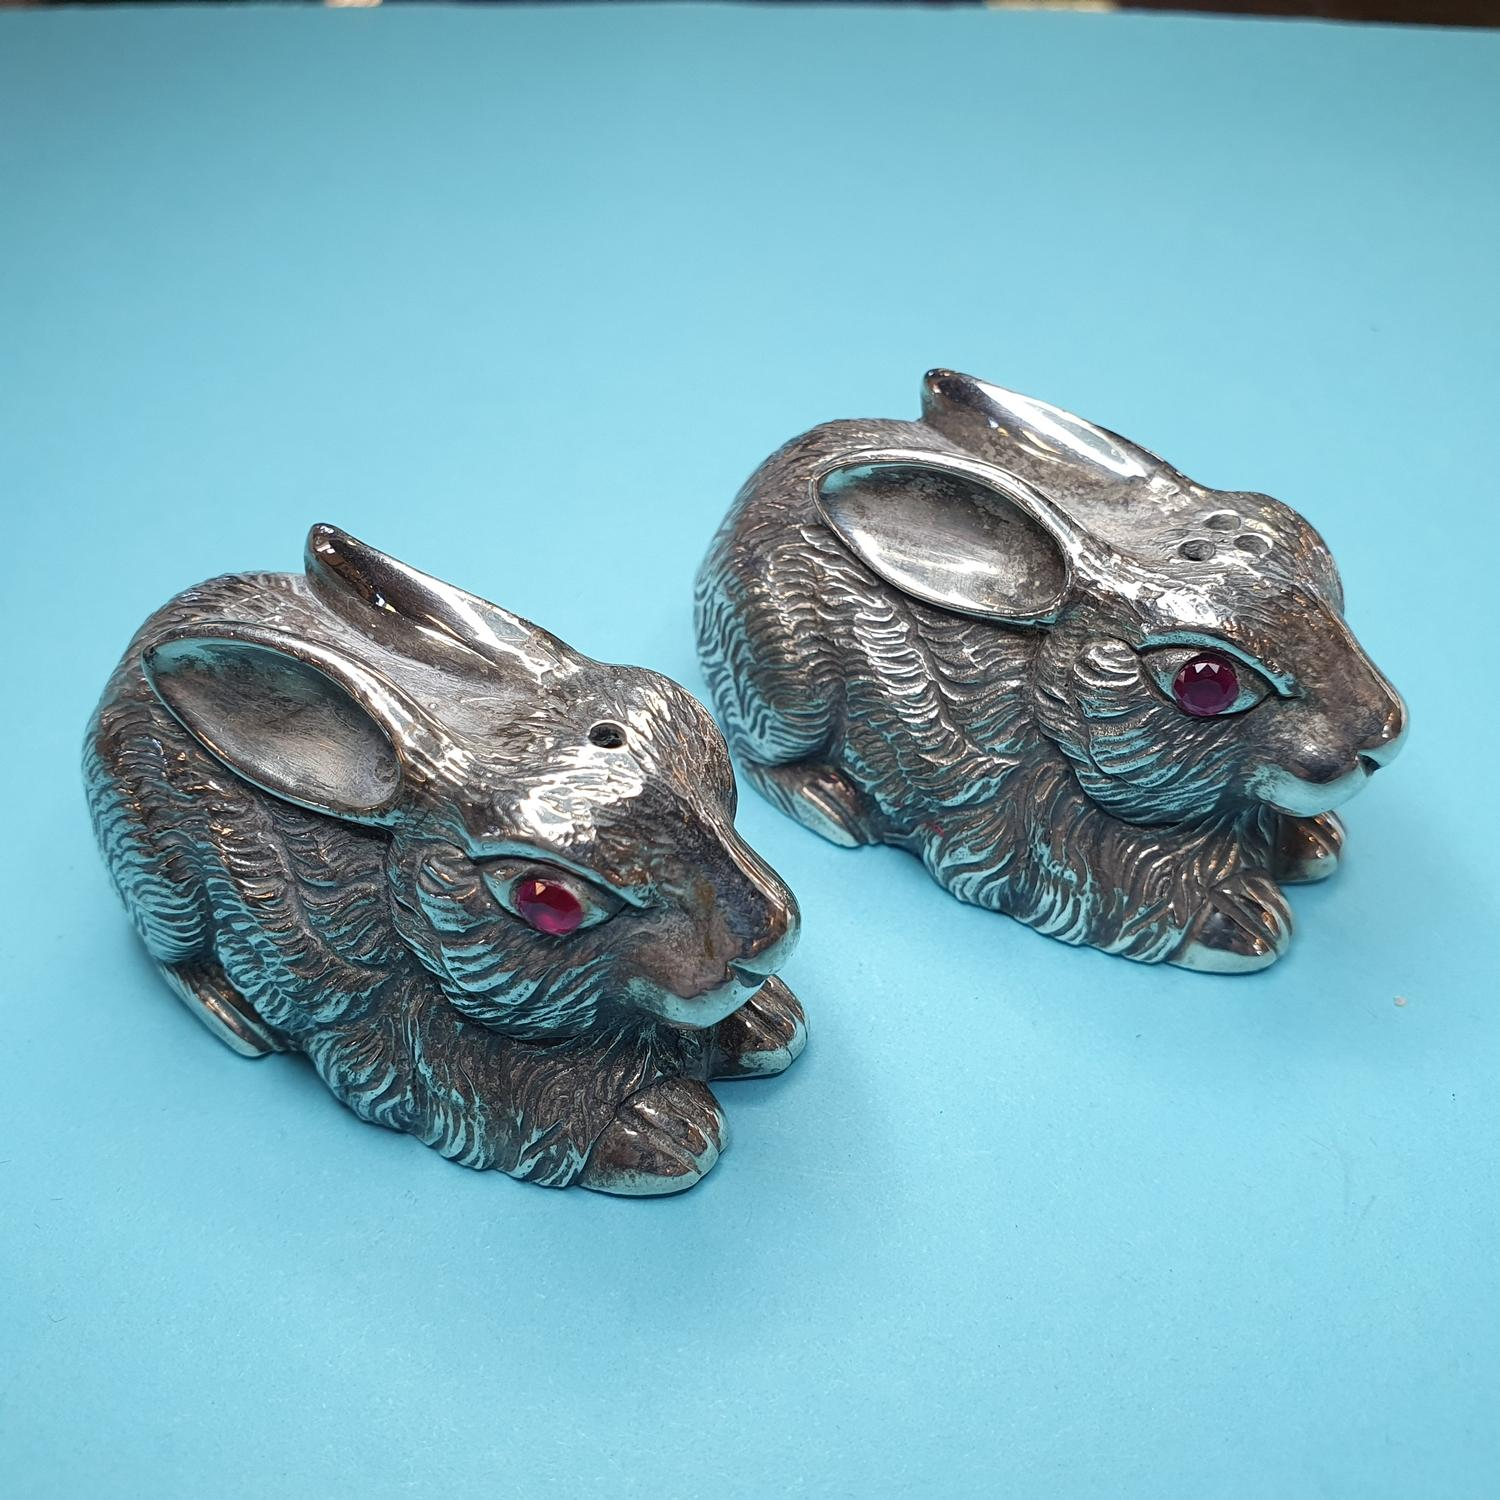 A pair of novelty silver condiments, in the form of rabbits